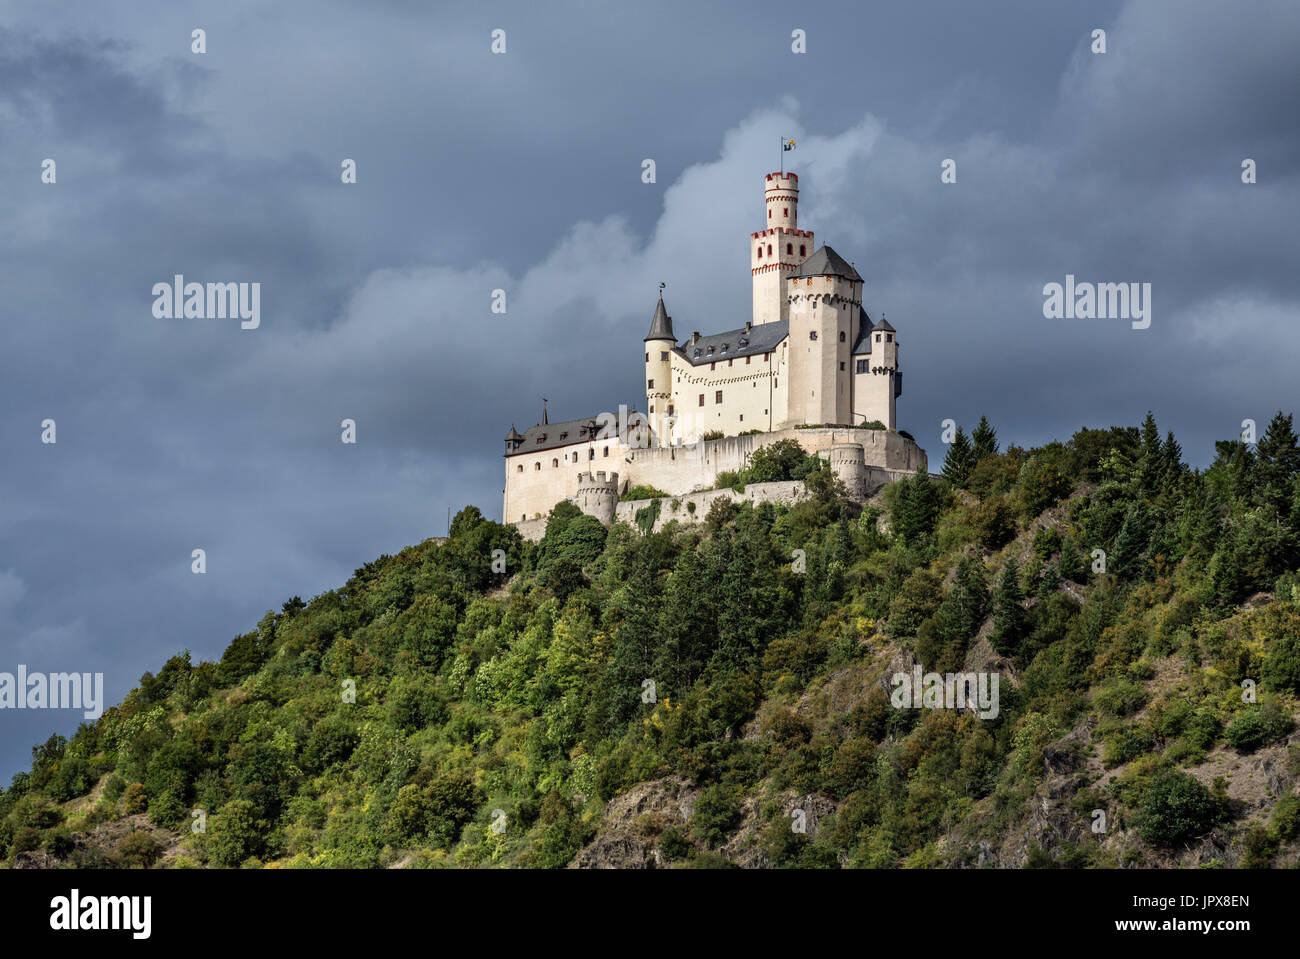 The Marksburg Castle on the River Rhine viewed from Braubach, Rhineland-Palatinate, Germany - Stock Image